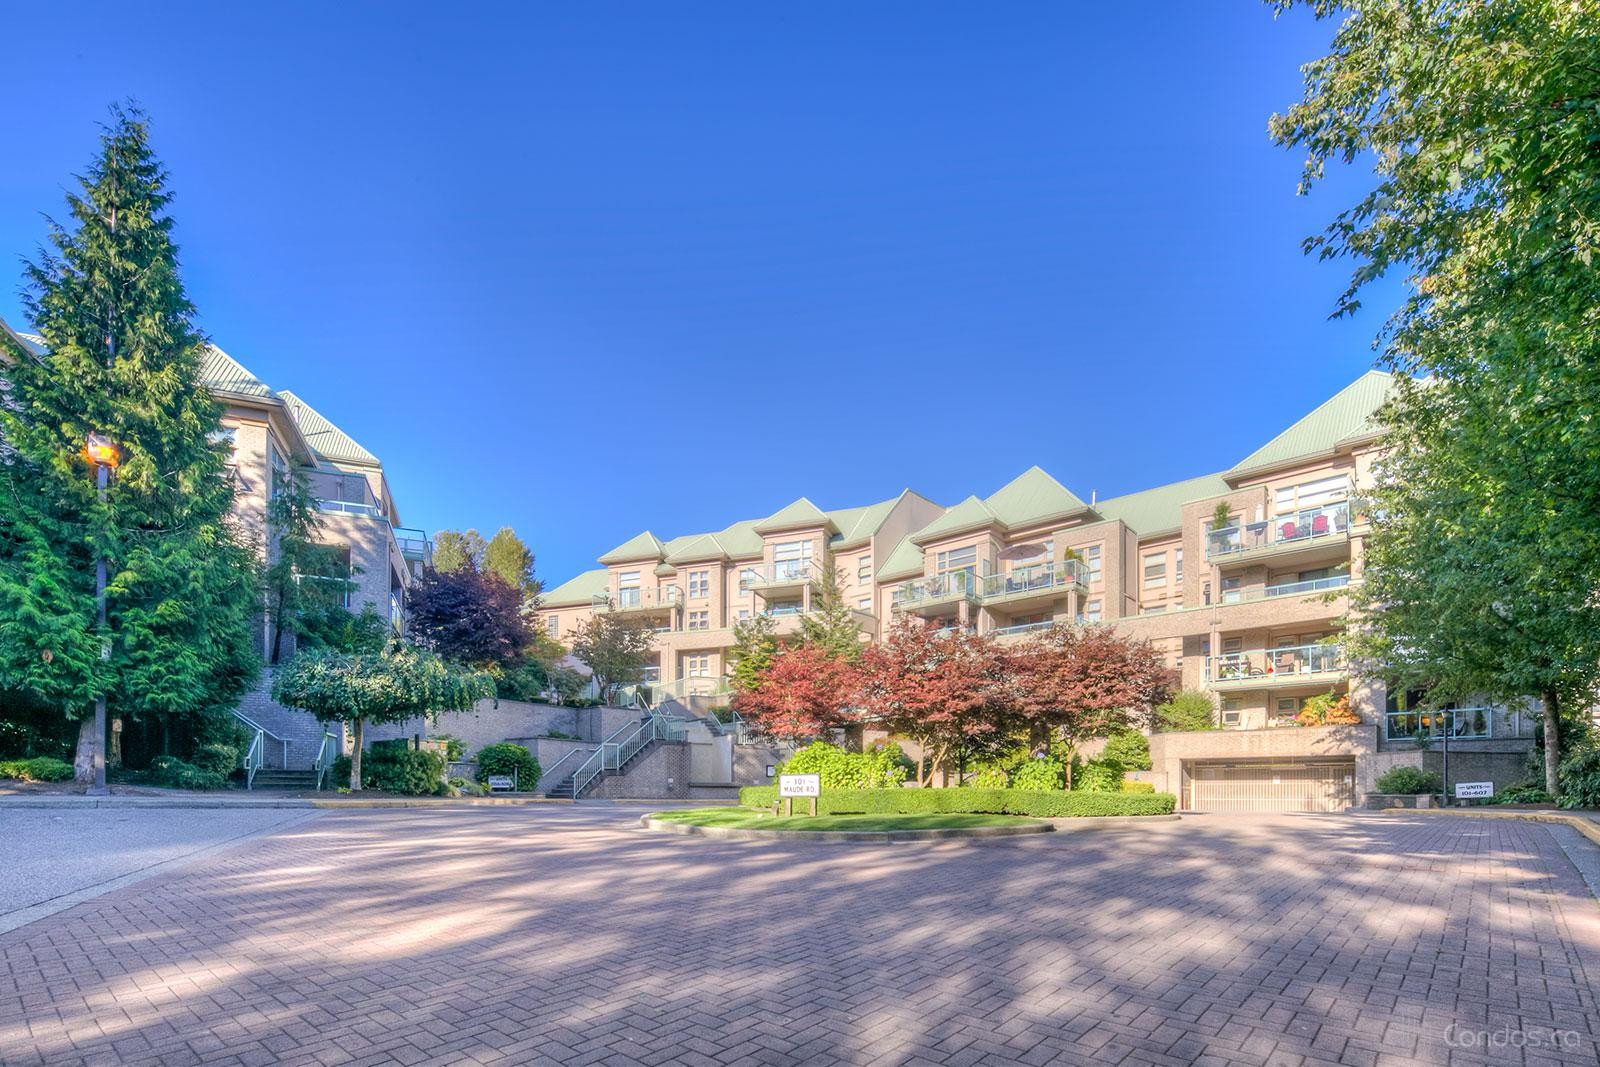 Heritage Grand at 301 Maude Rd, Port Moody 0